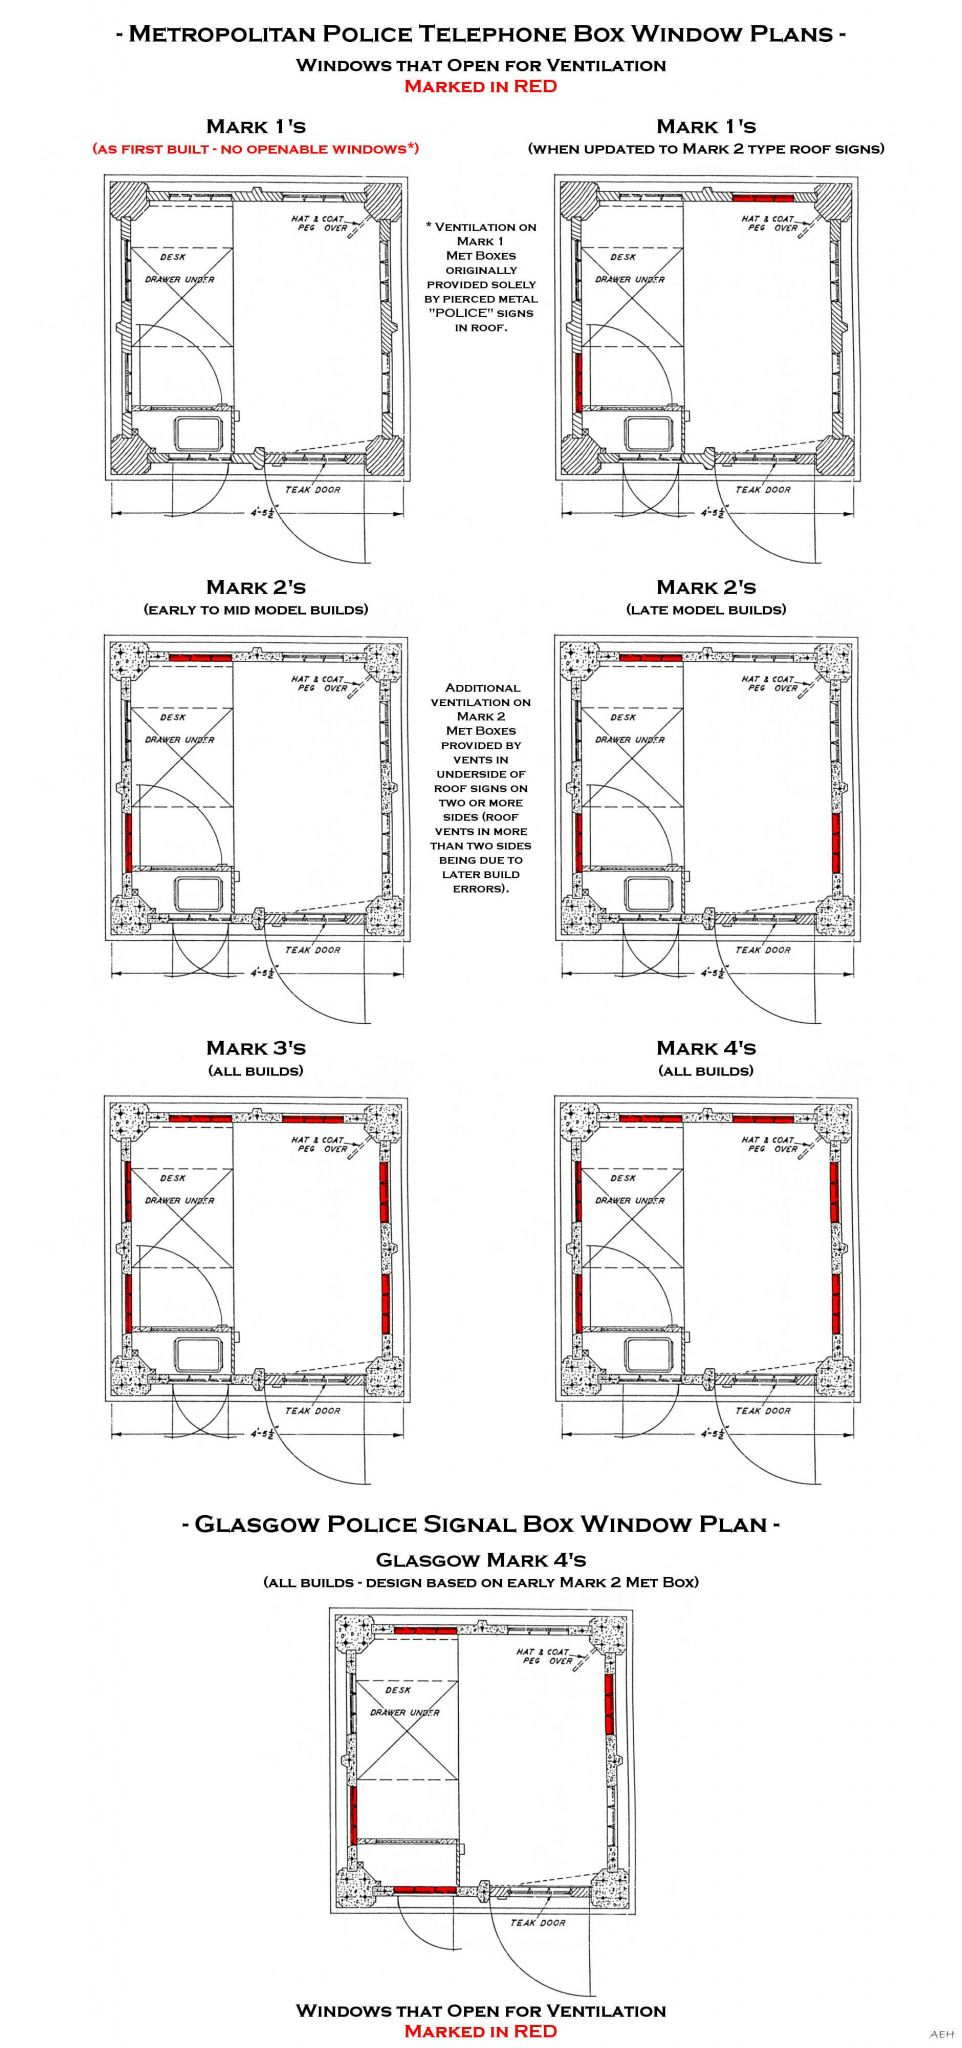 Met_&_Glasgow_Window_Ventilation_Plans-Full_Size_Chart-(compressed).jpg